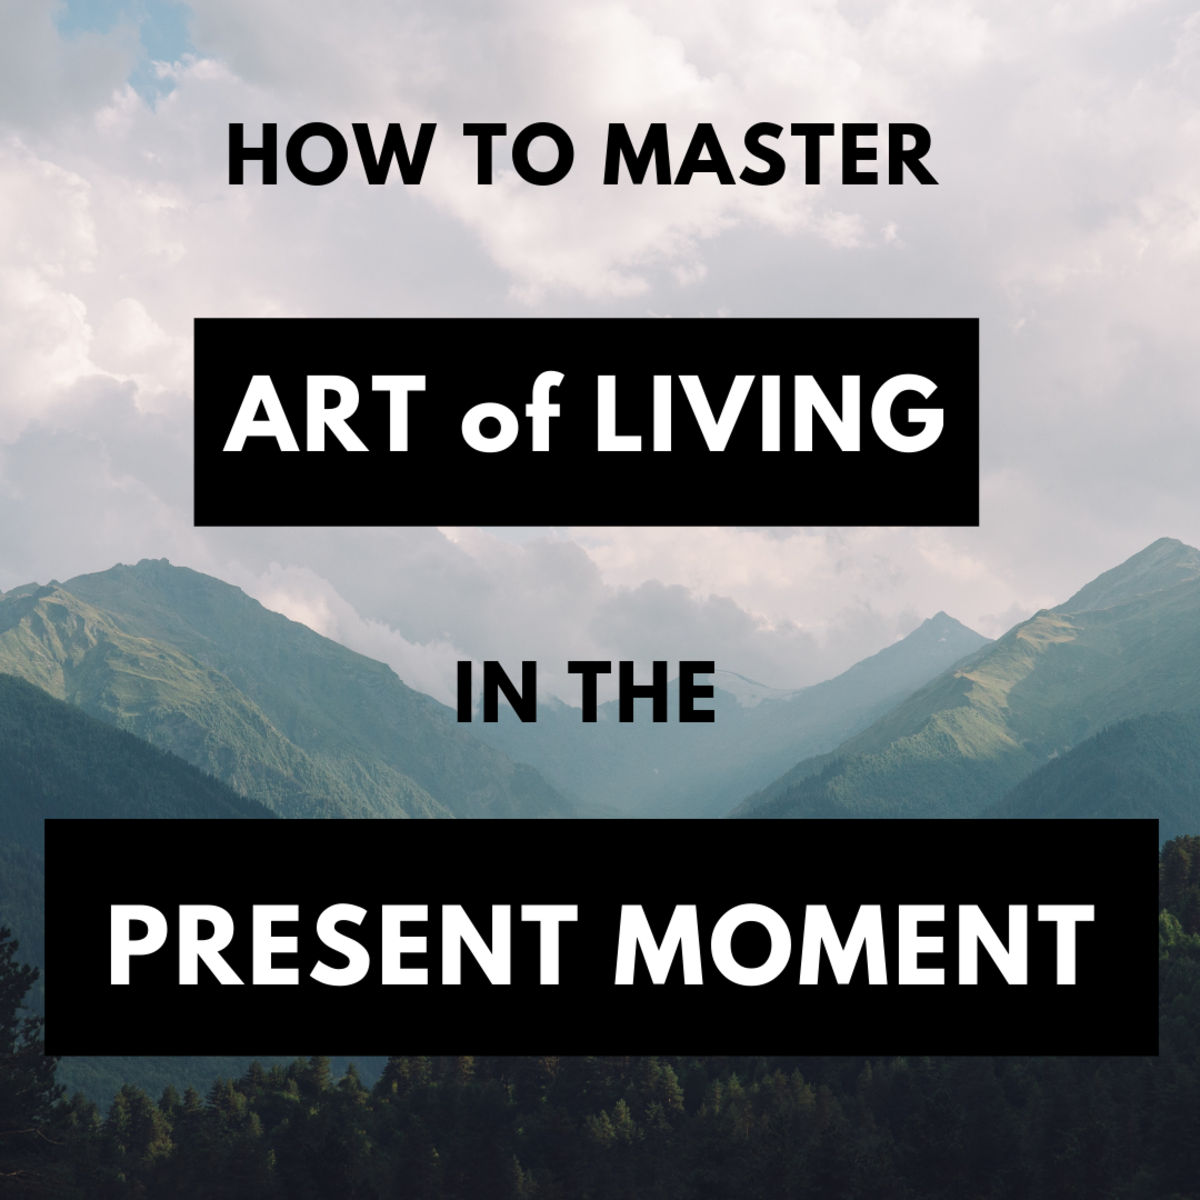 How to Master the Art of Living in the Present Moment?